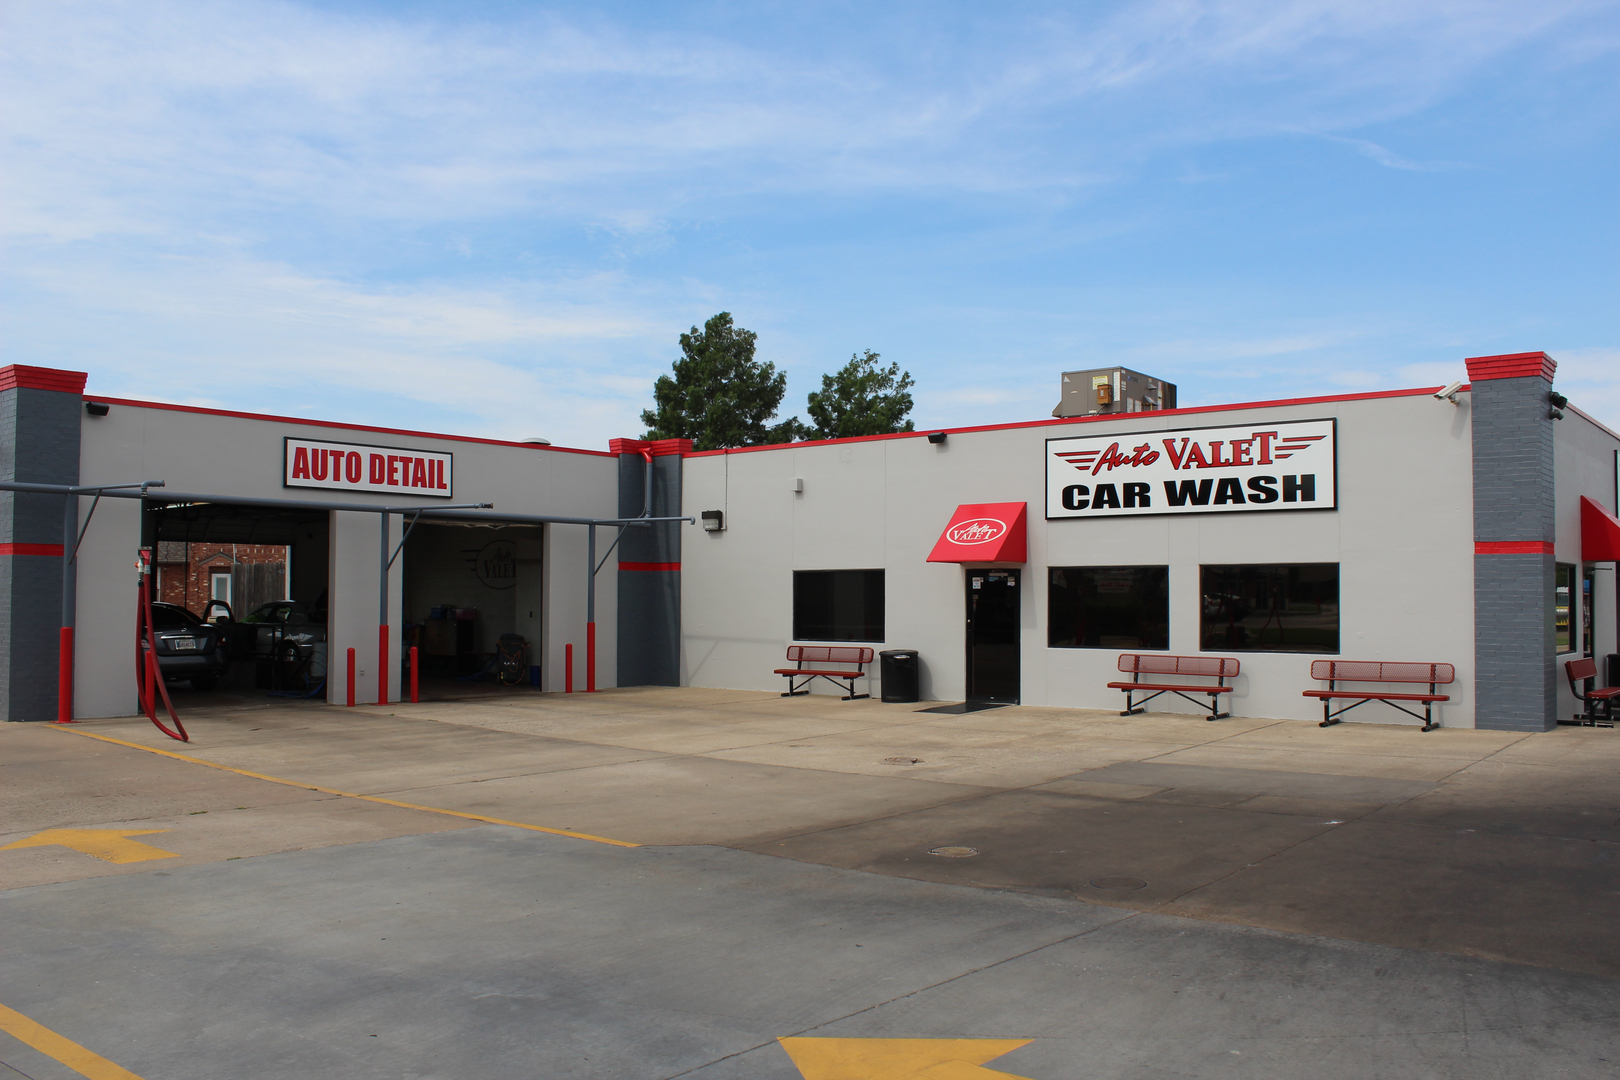 Full service car wash in normandetailing window tint vacuums whether you own an import a domestic or a high performance exotic car we are the place to take your car for a wash detail or even a window tint solutioingenieria Images